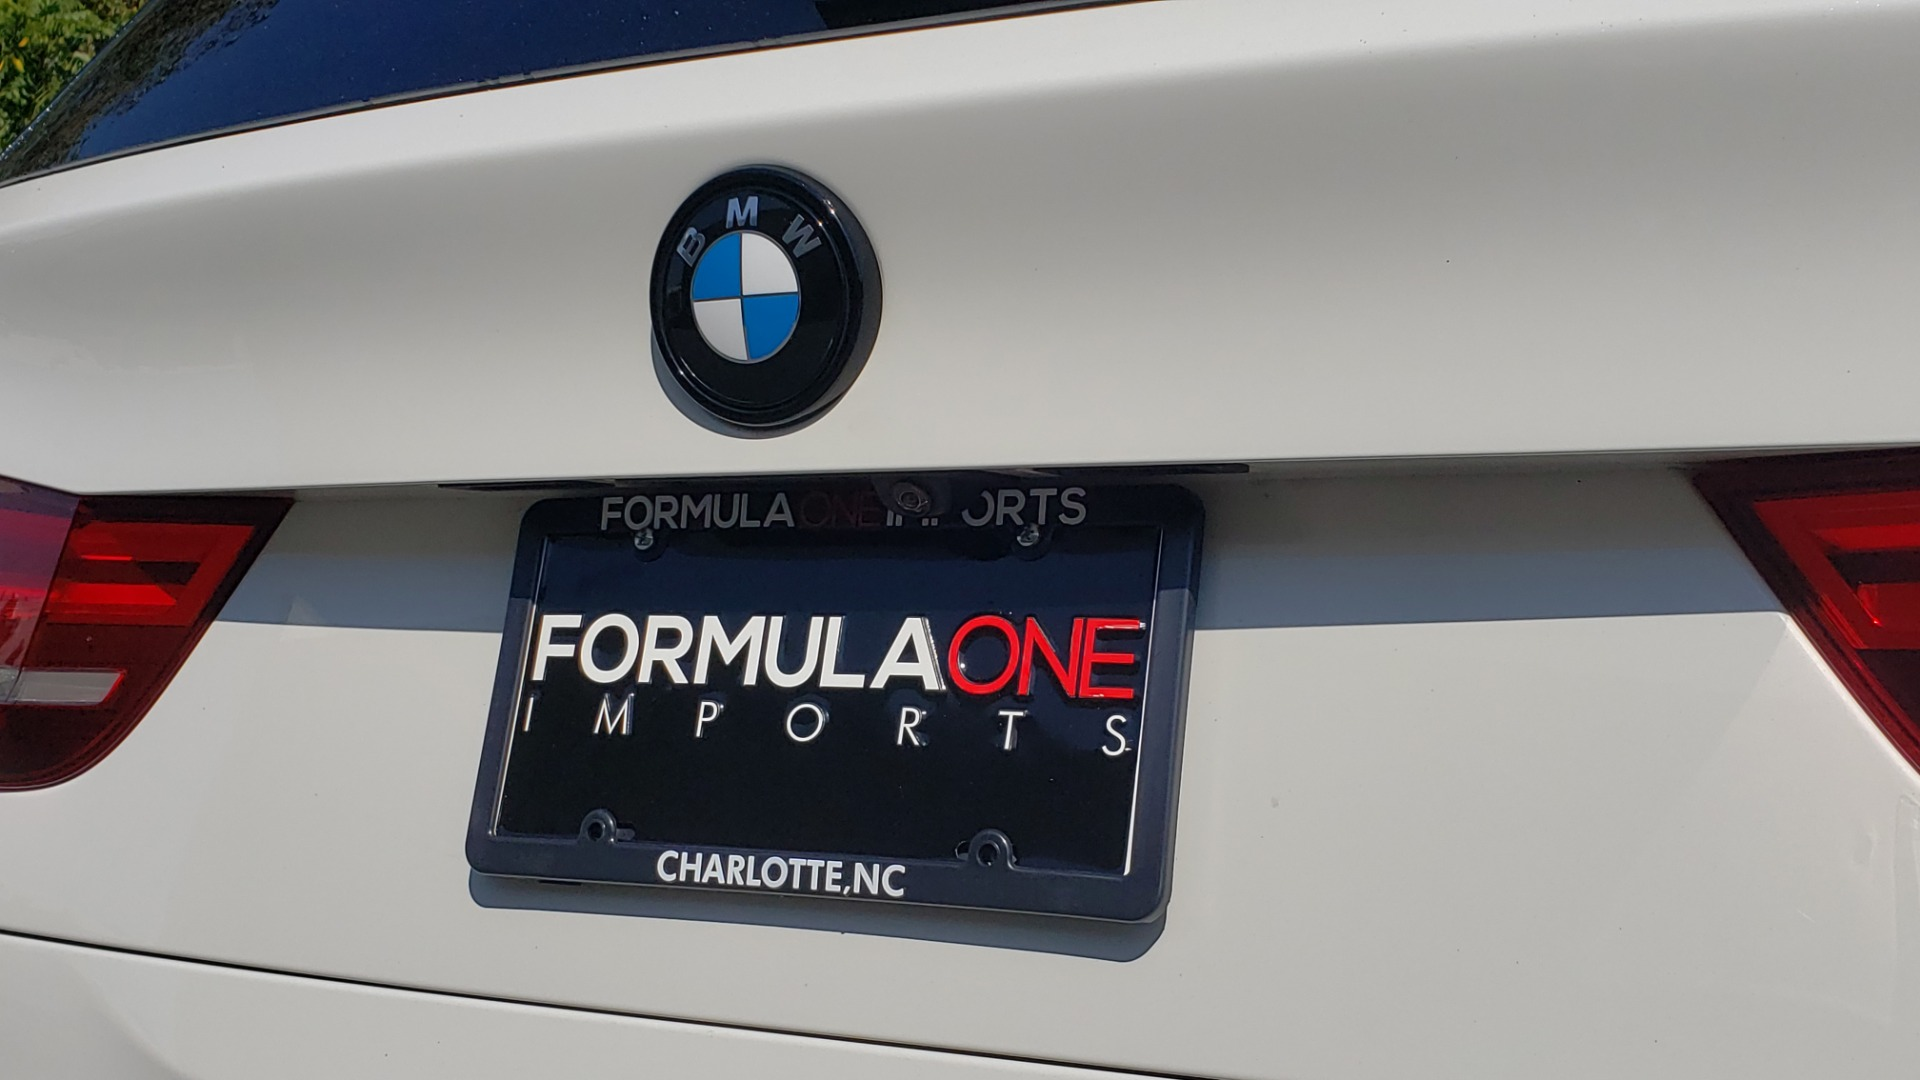 Used 2017 BMW X5 M SPORT / AWD / DRVR ASST / EXEC PKG / B&O SND / NIGHT VIS / PARK ASST for sale Sold at Formula Imports in Charlotte NC 28227 36